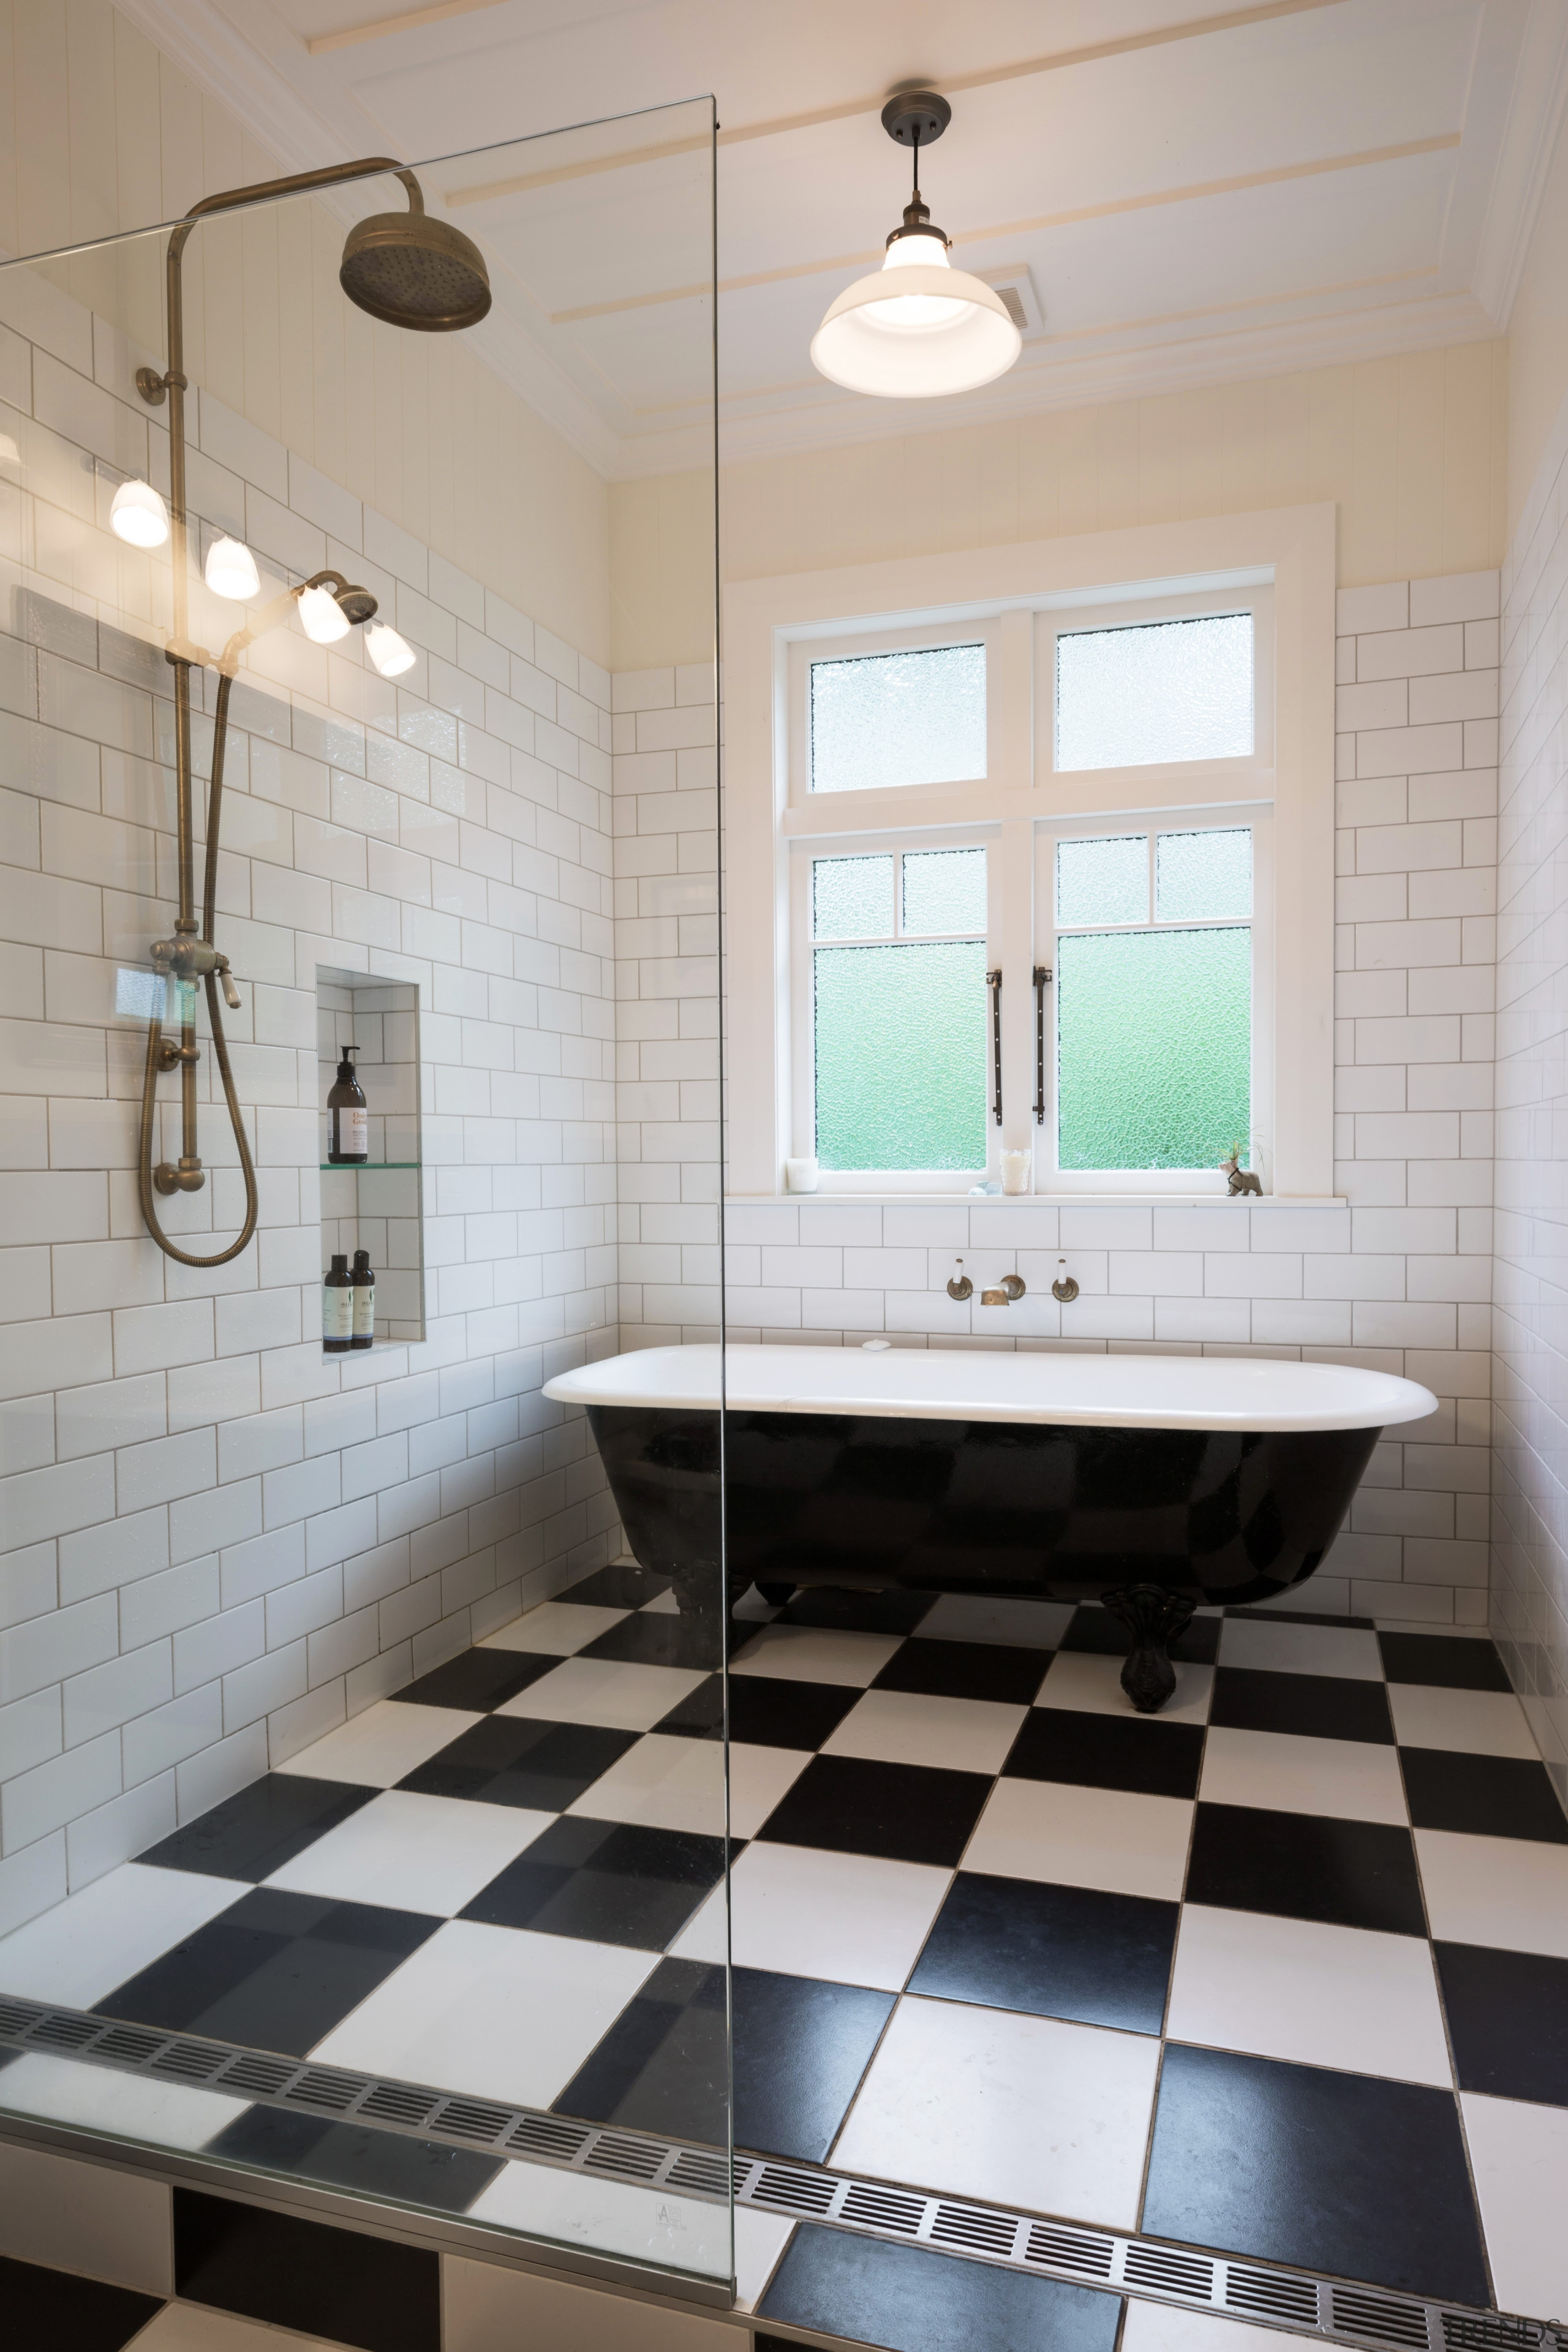 The shower had to all but disappear in bathroom, floor, flooring, home, interior design, plumbing fixture, room, sink, tile, wall, gray